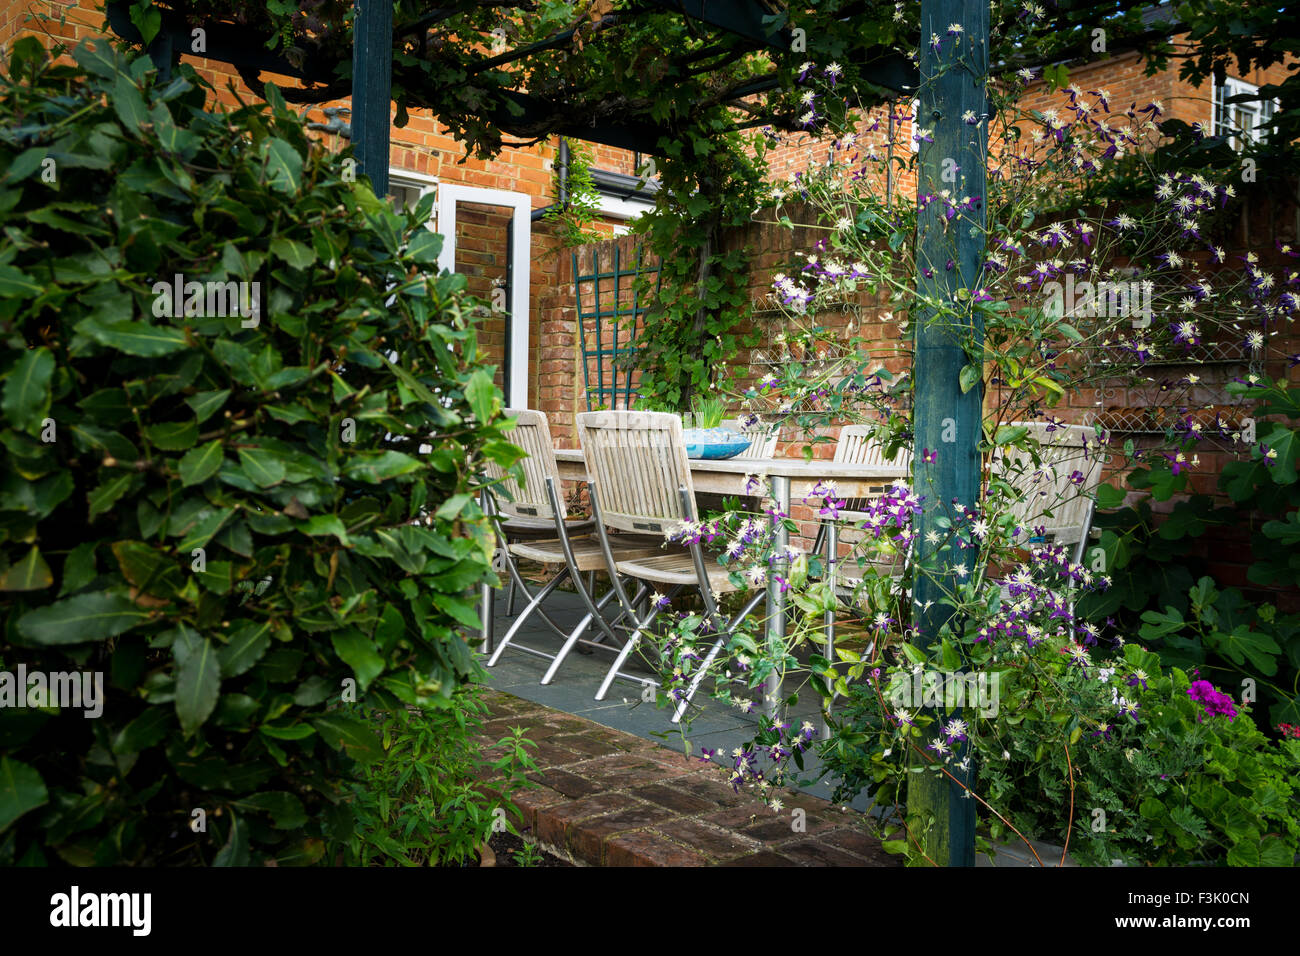 A table and chairs in the shade of a vine covered pergola in an English Country Garden. - Stock Image